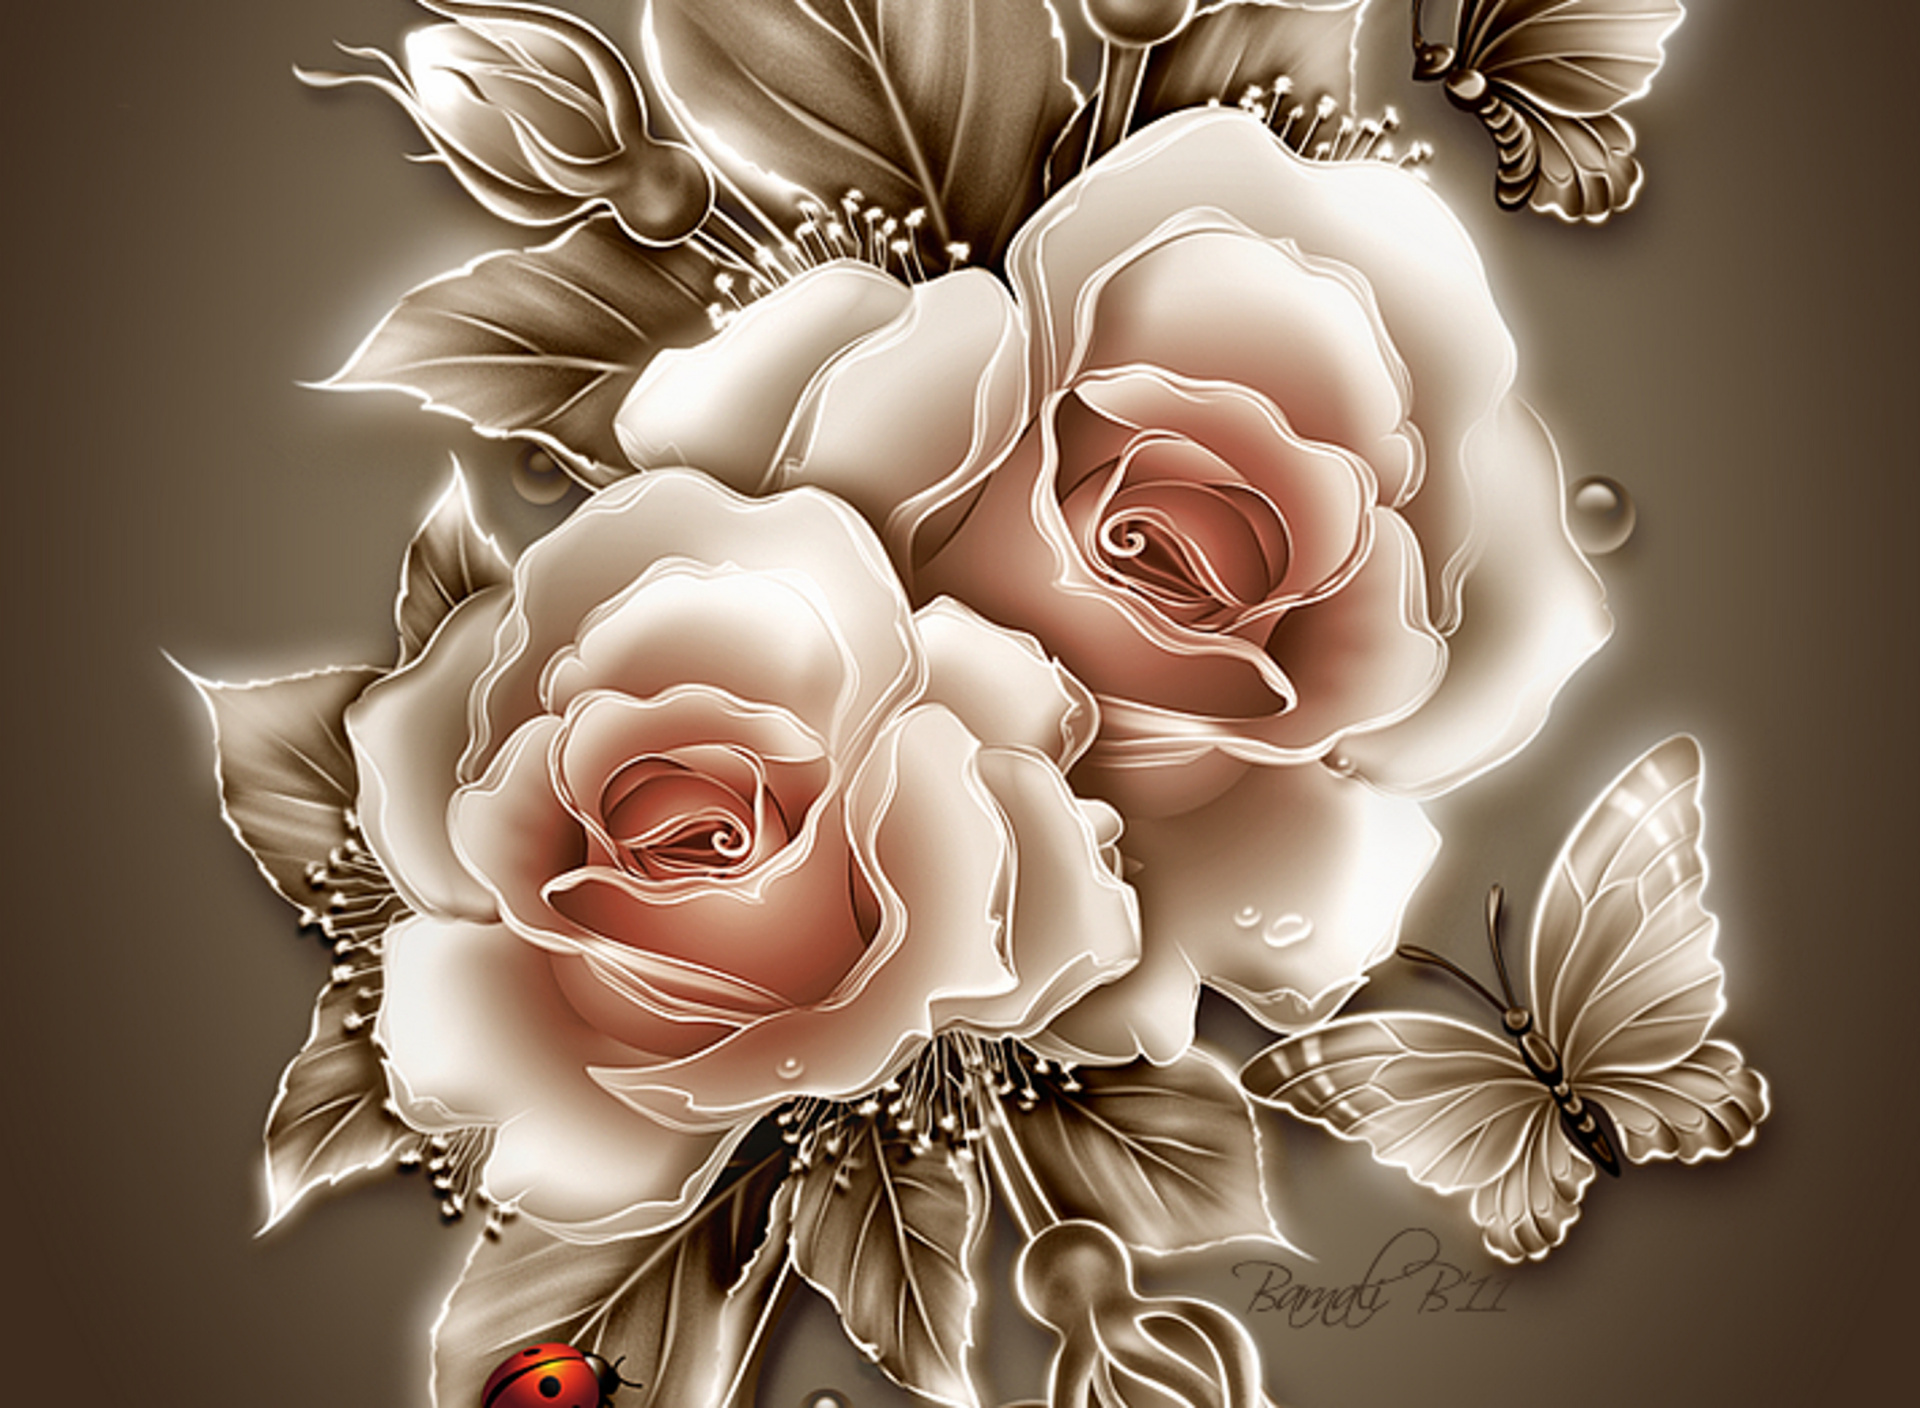 Most beautiful flower wallpapers wallpapersafari - Rose flowers wallpaper for mobile ...